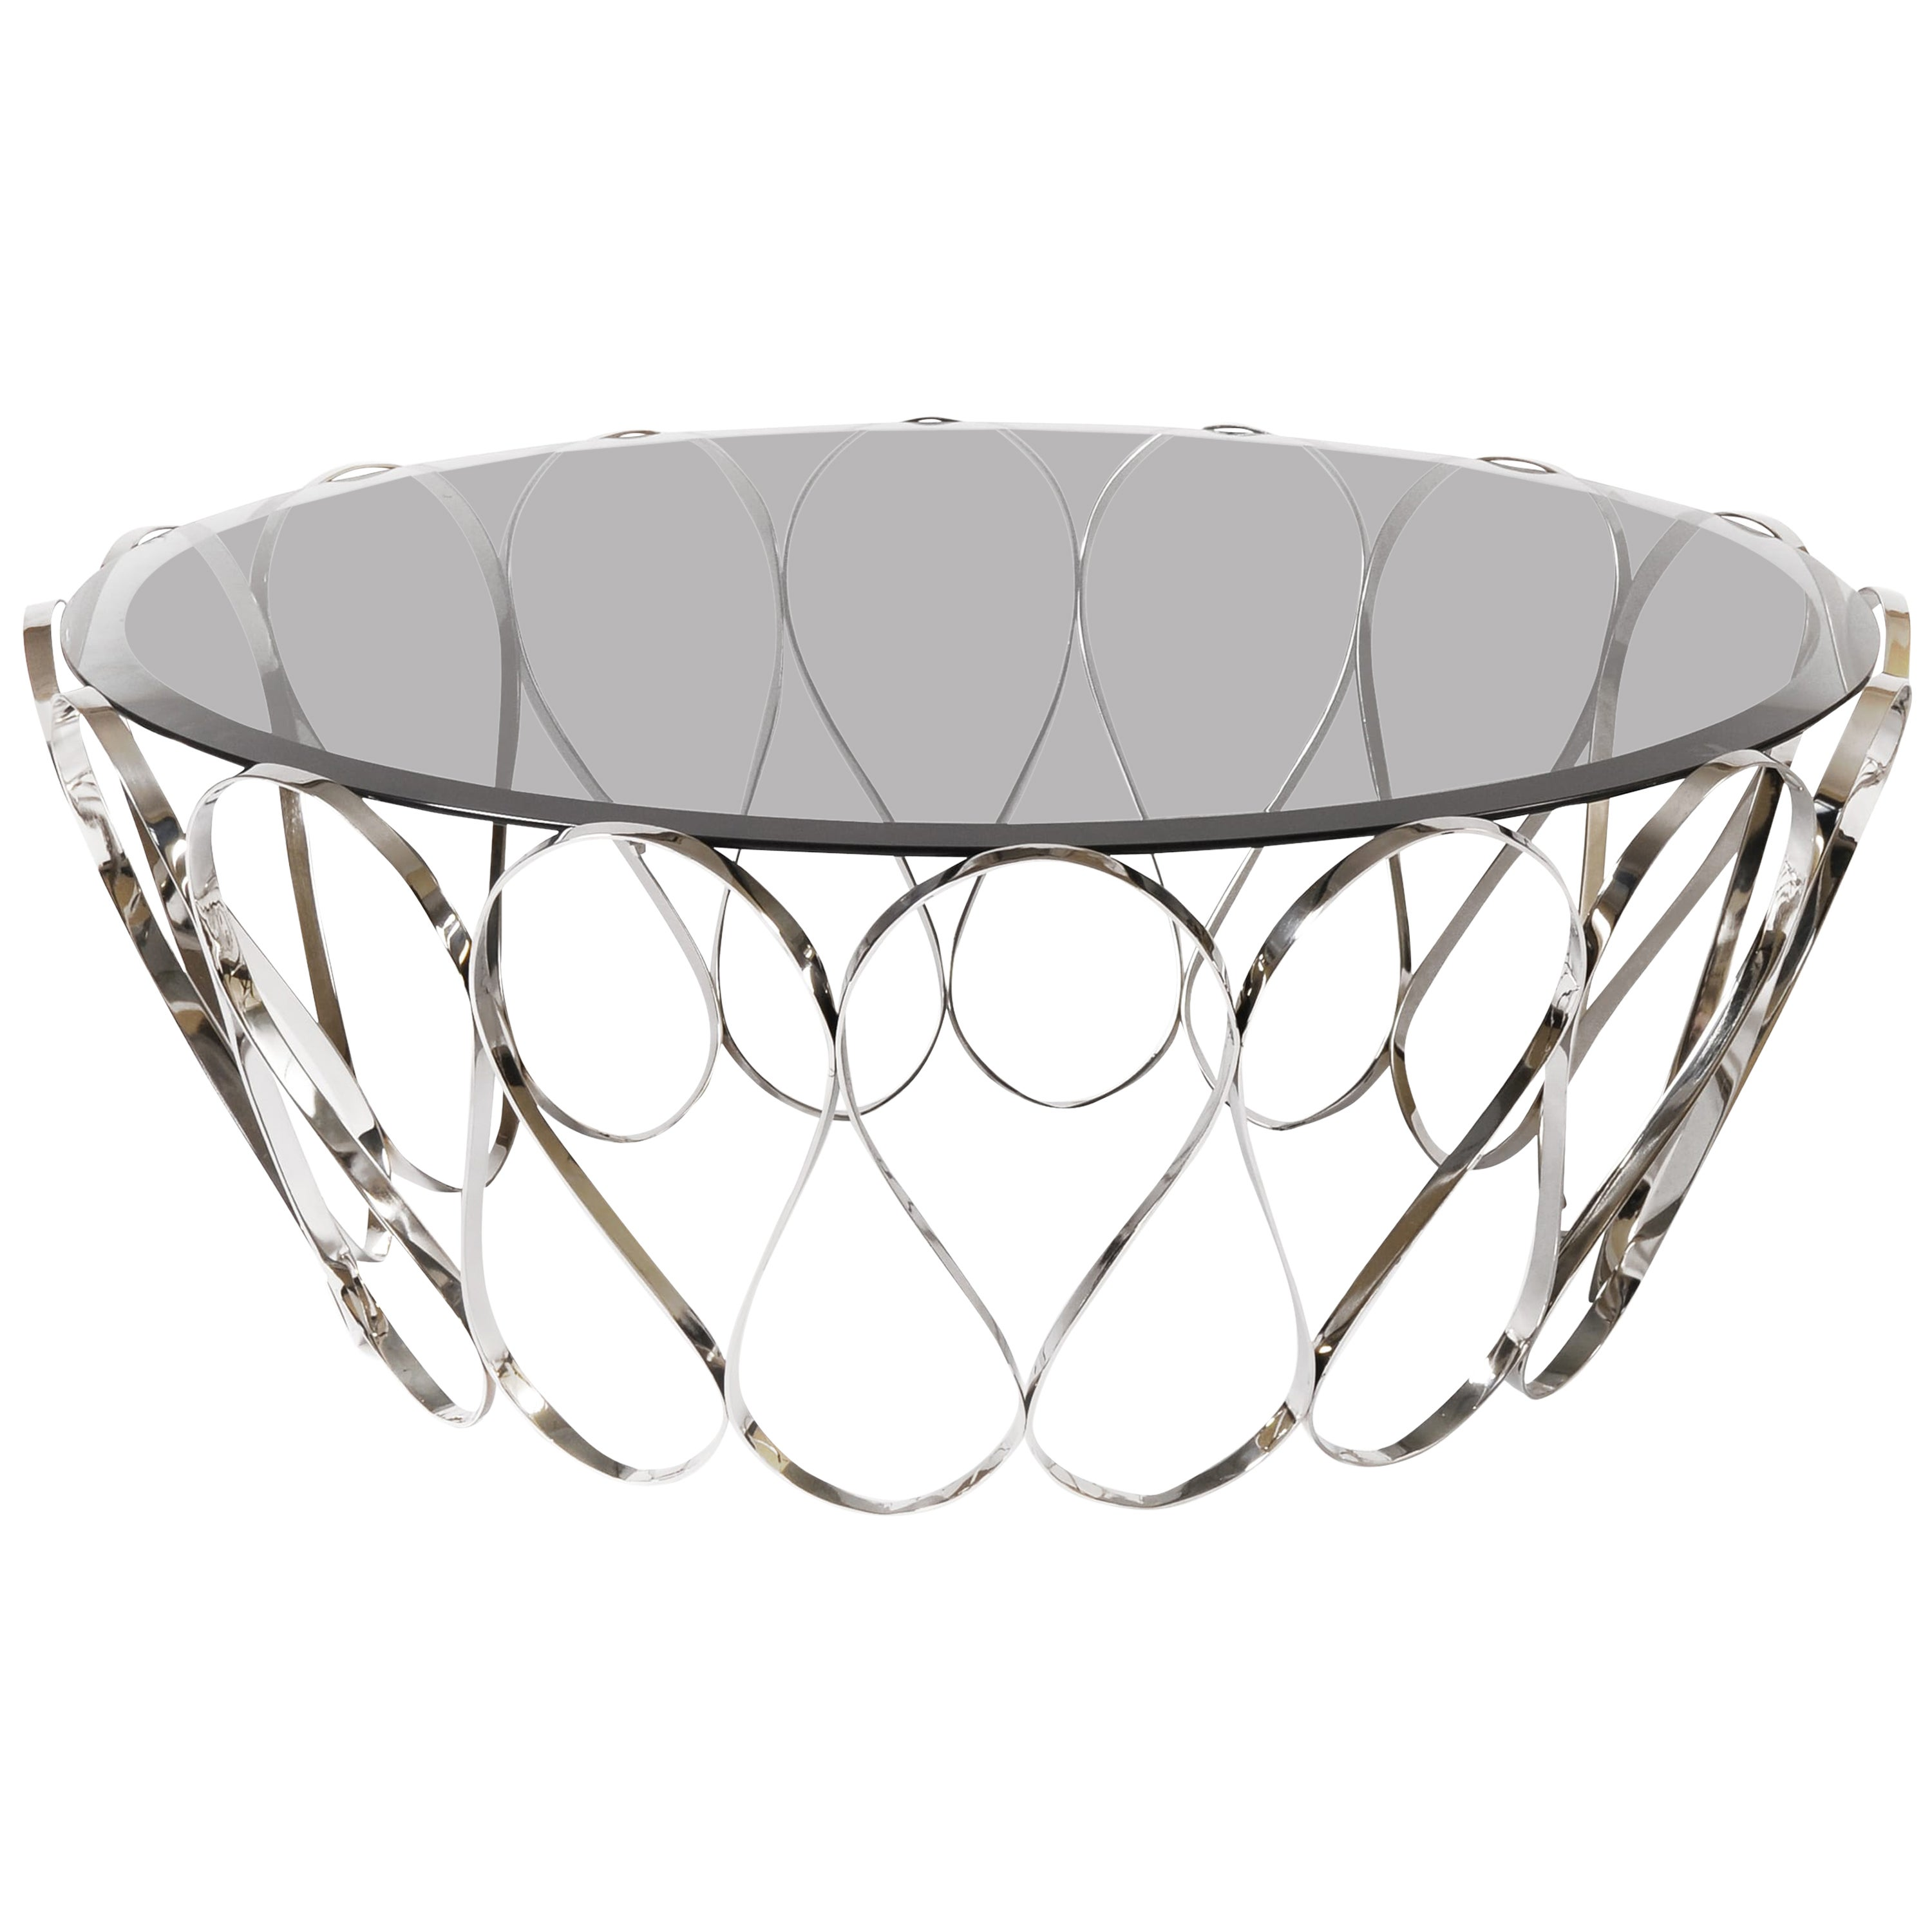 Aquarius Center Table in Stainless Steel with Glass Top